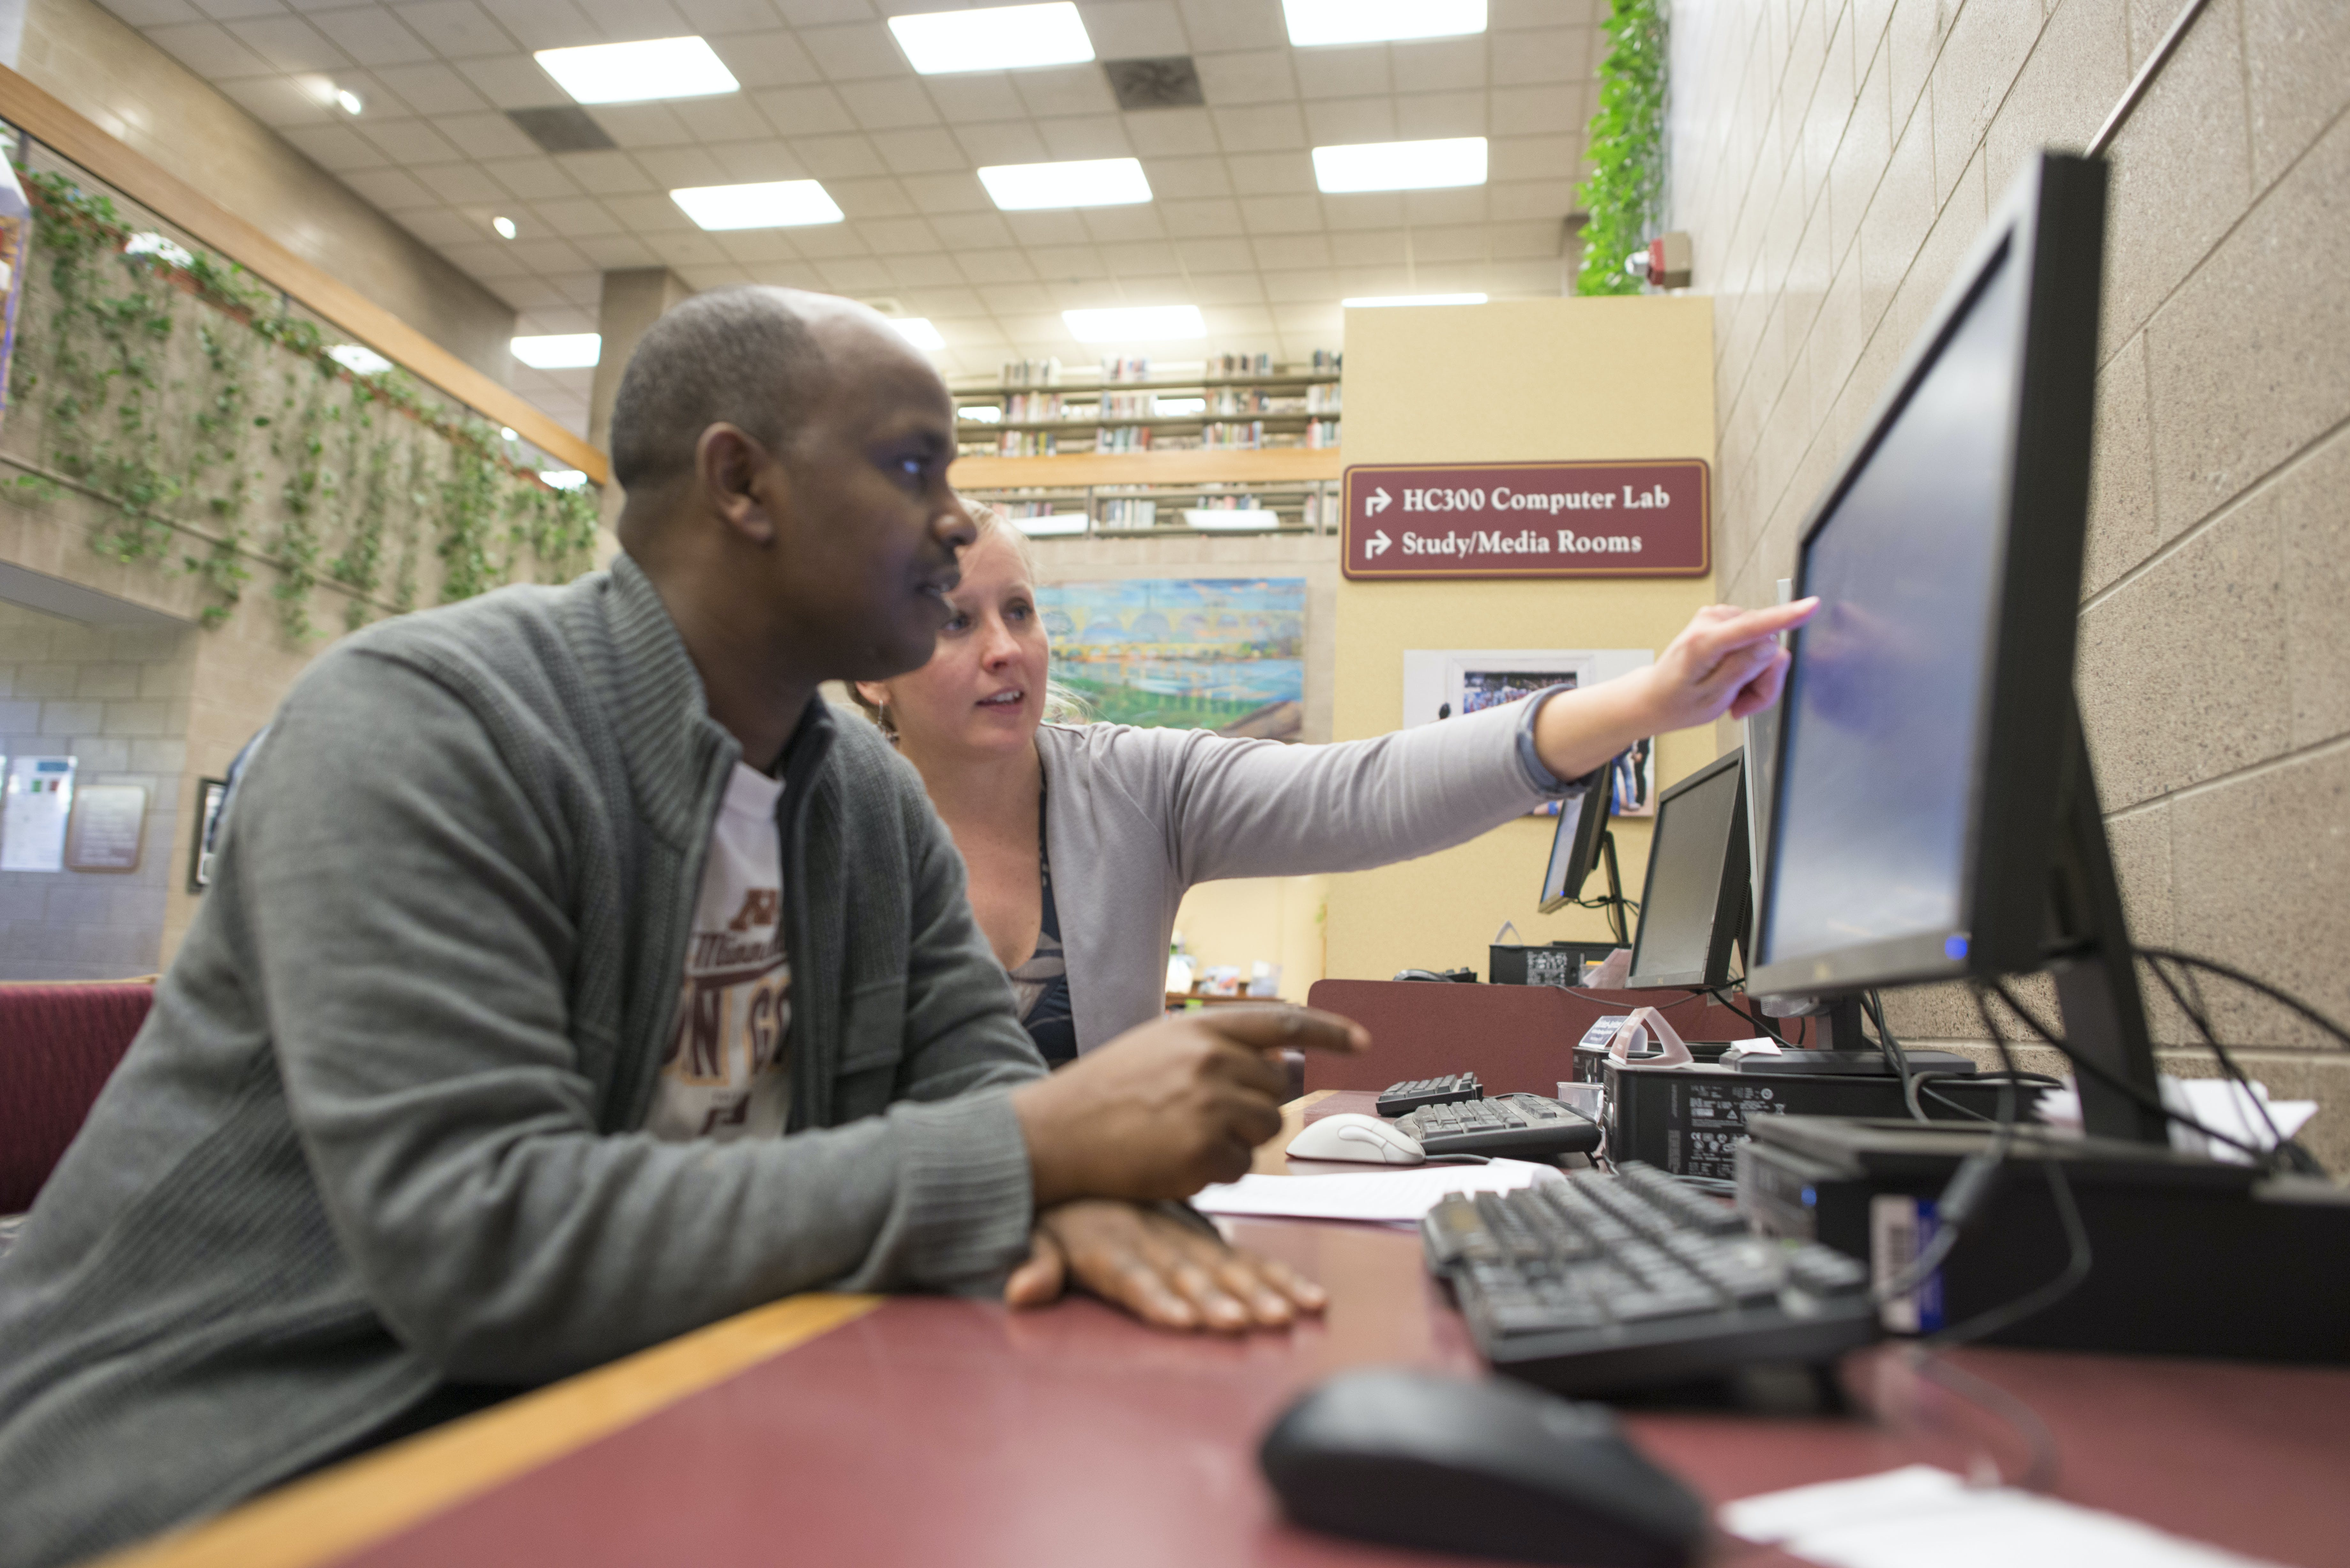 Library staff helps faculty on computer